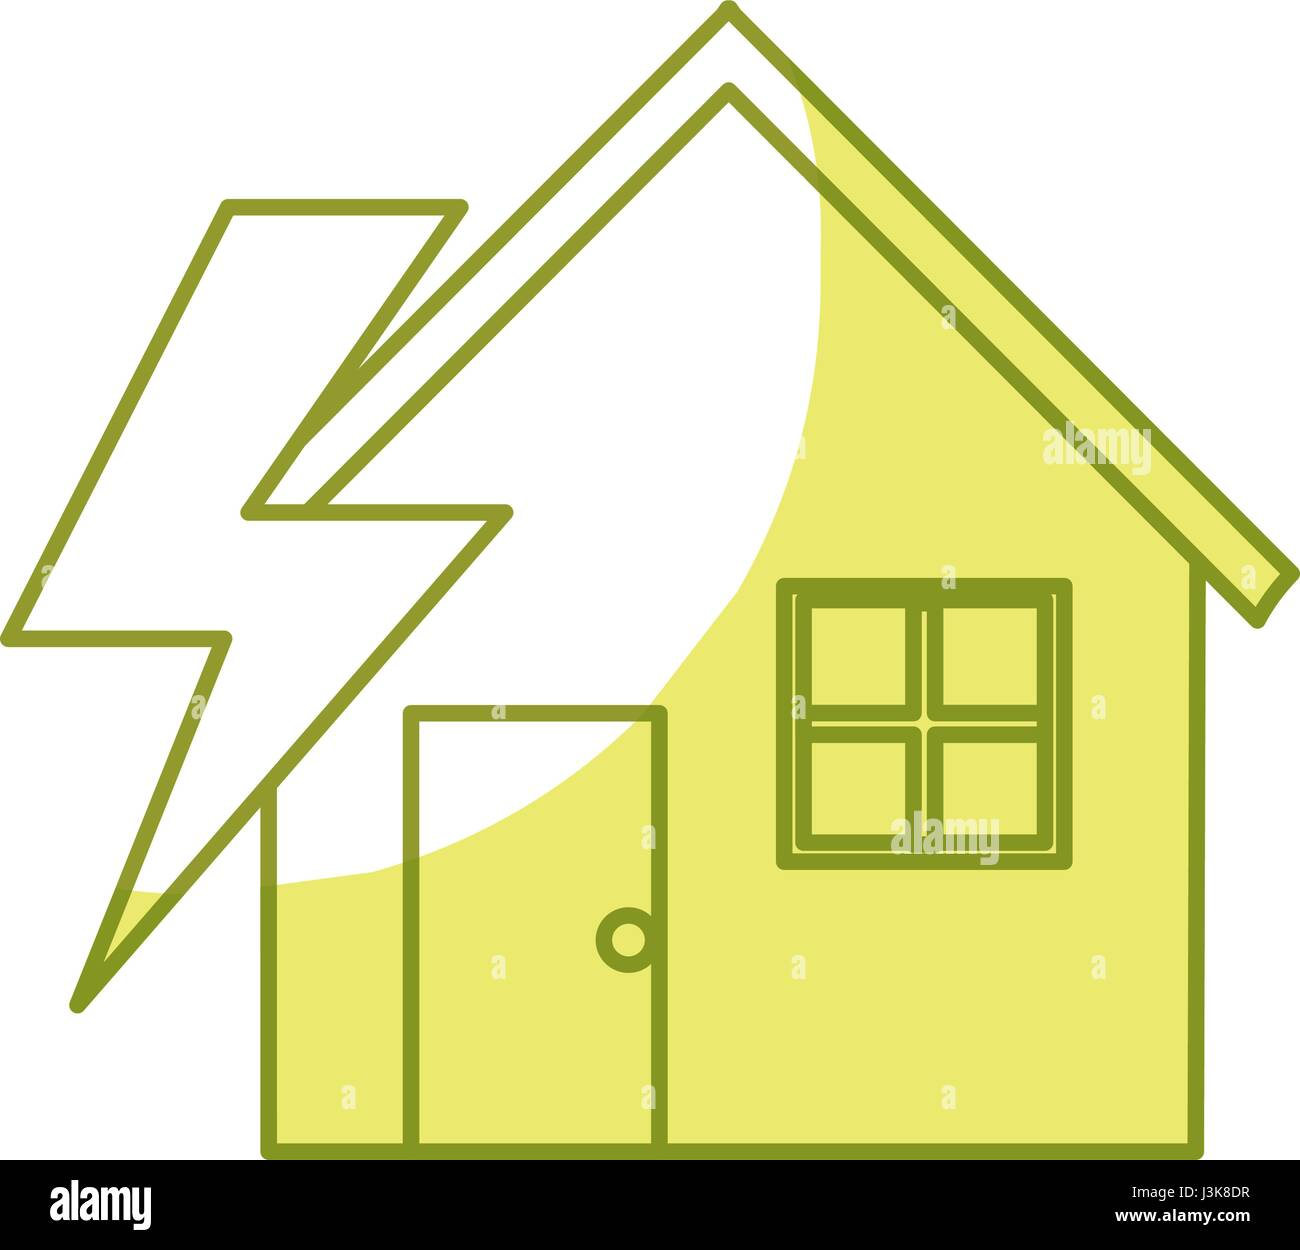 house with energy symbol to care environment - Stock Image